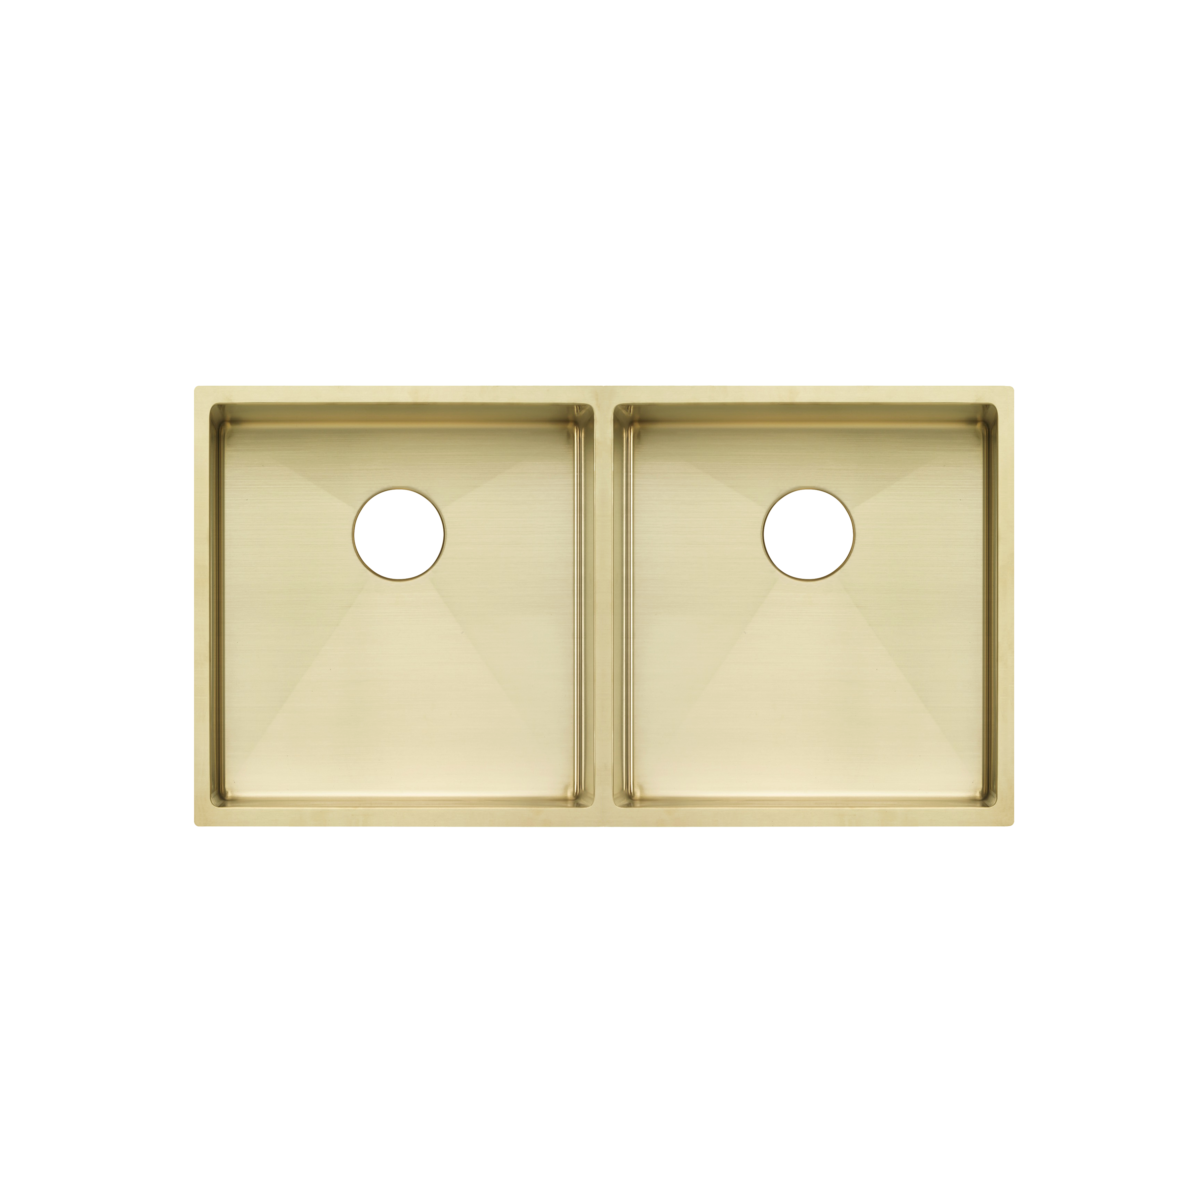 Zalo Kitchen Sink Double 855mm with Racks and Overflow – Brushed Brass